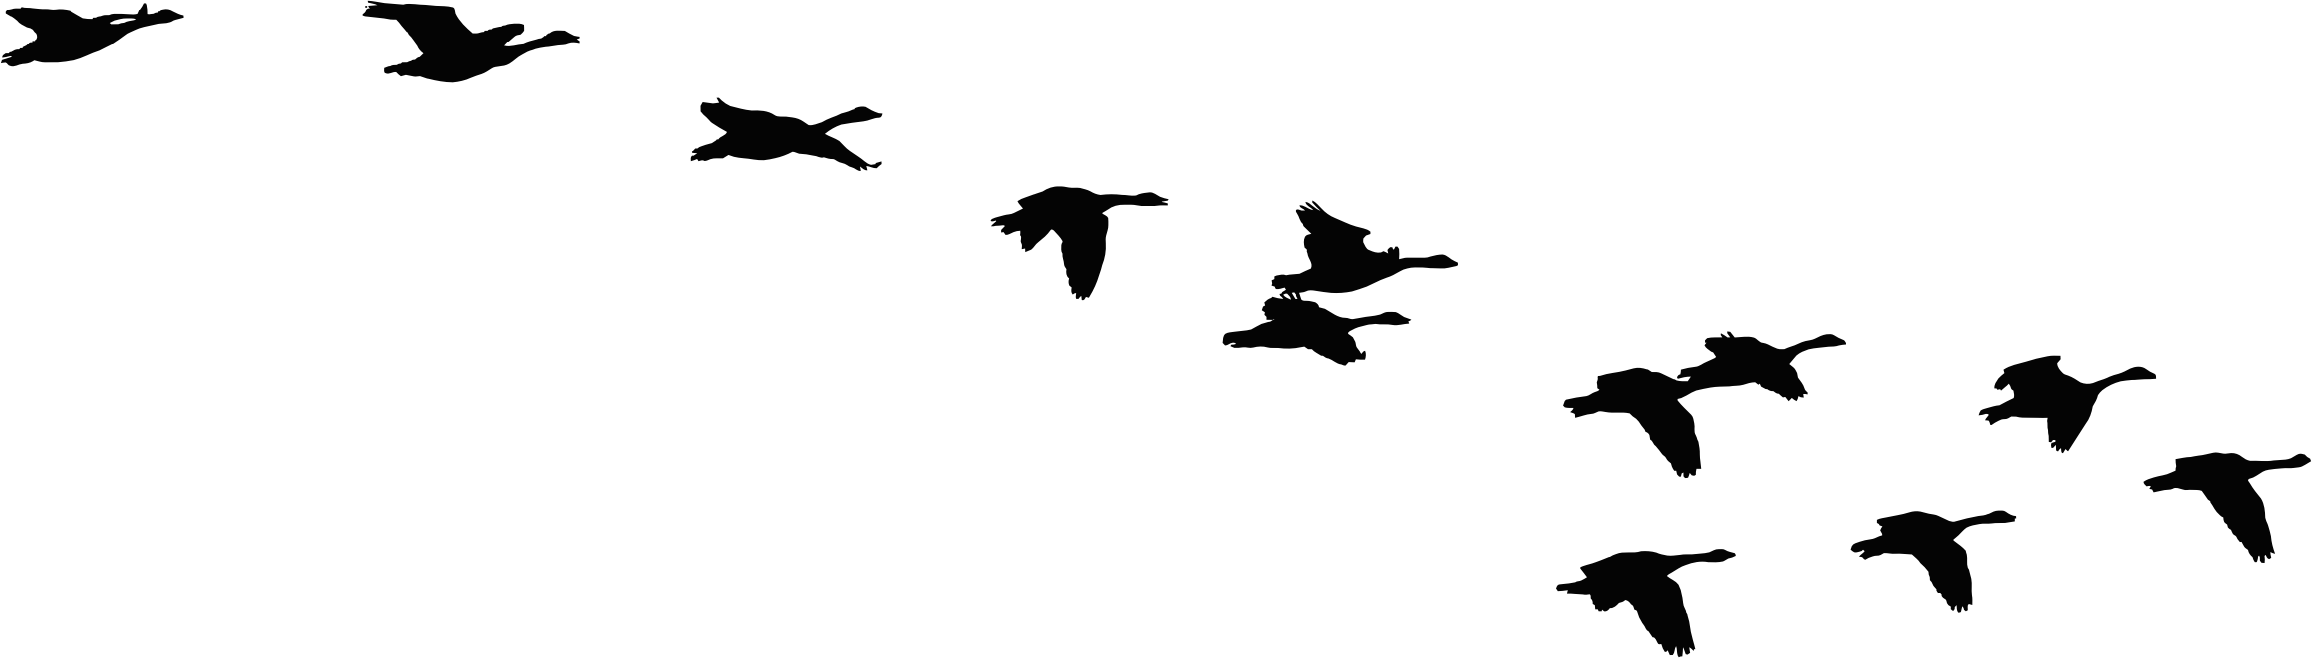 2312x658 Flock Of Flying Geese Silhouette Icons Png